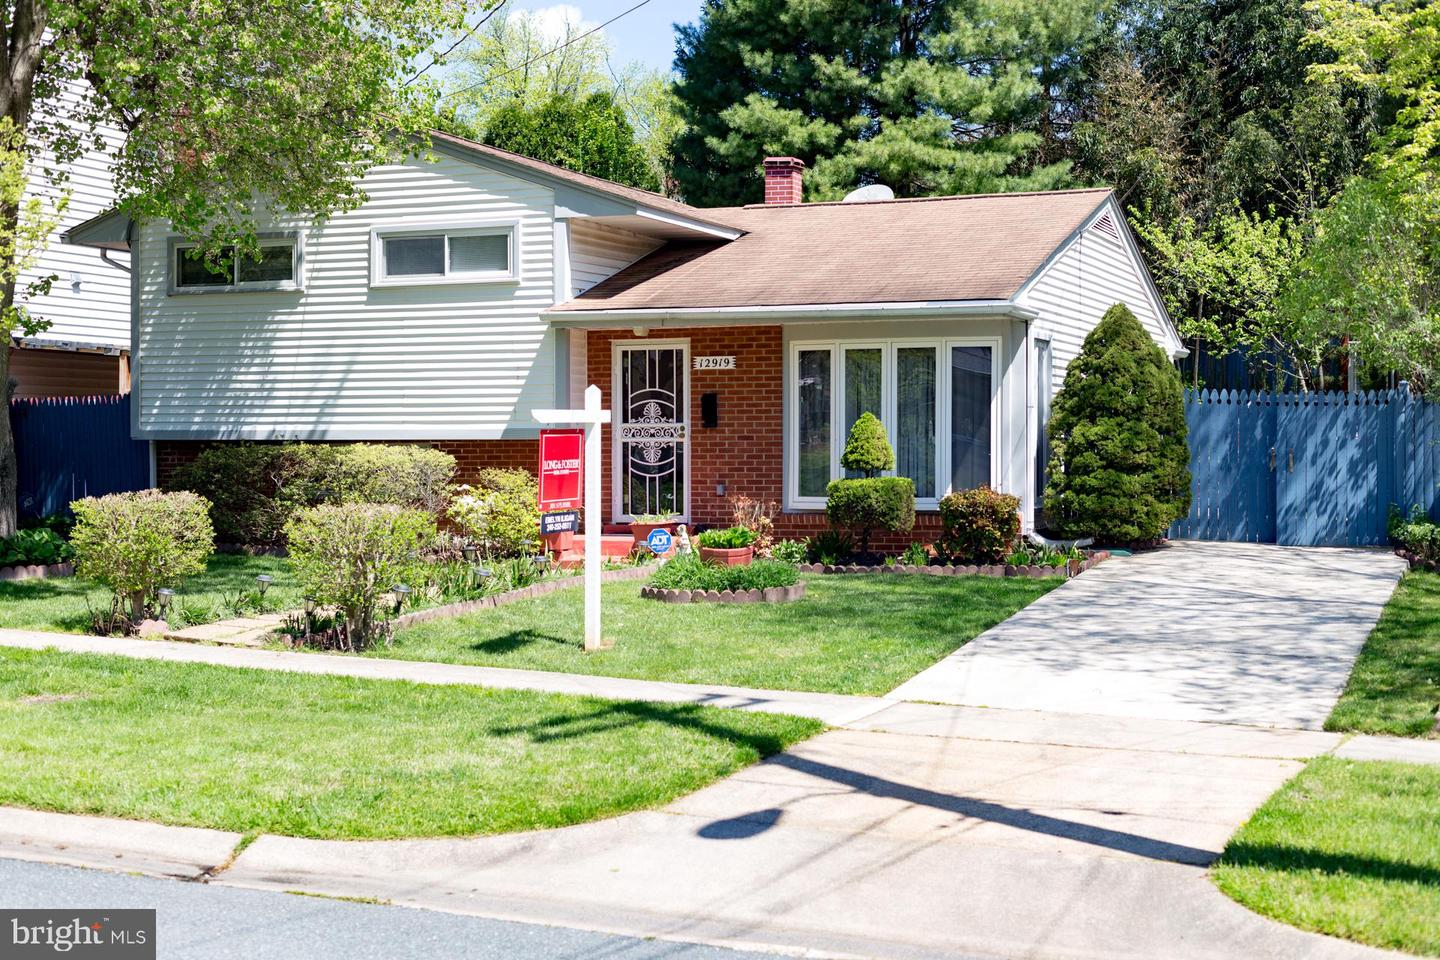 12919 GRENOBLE DR, ROCKVILLE, Maryland 20853, 3 Bedrooms Bedrooms, ,2 BathroomsBathrooms,Single Family,For Sale,12919 GRENOBLE DR,MDMC753536